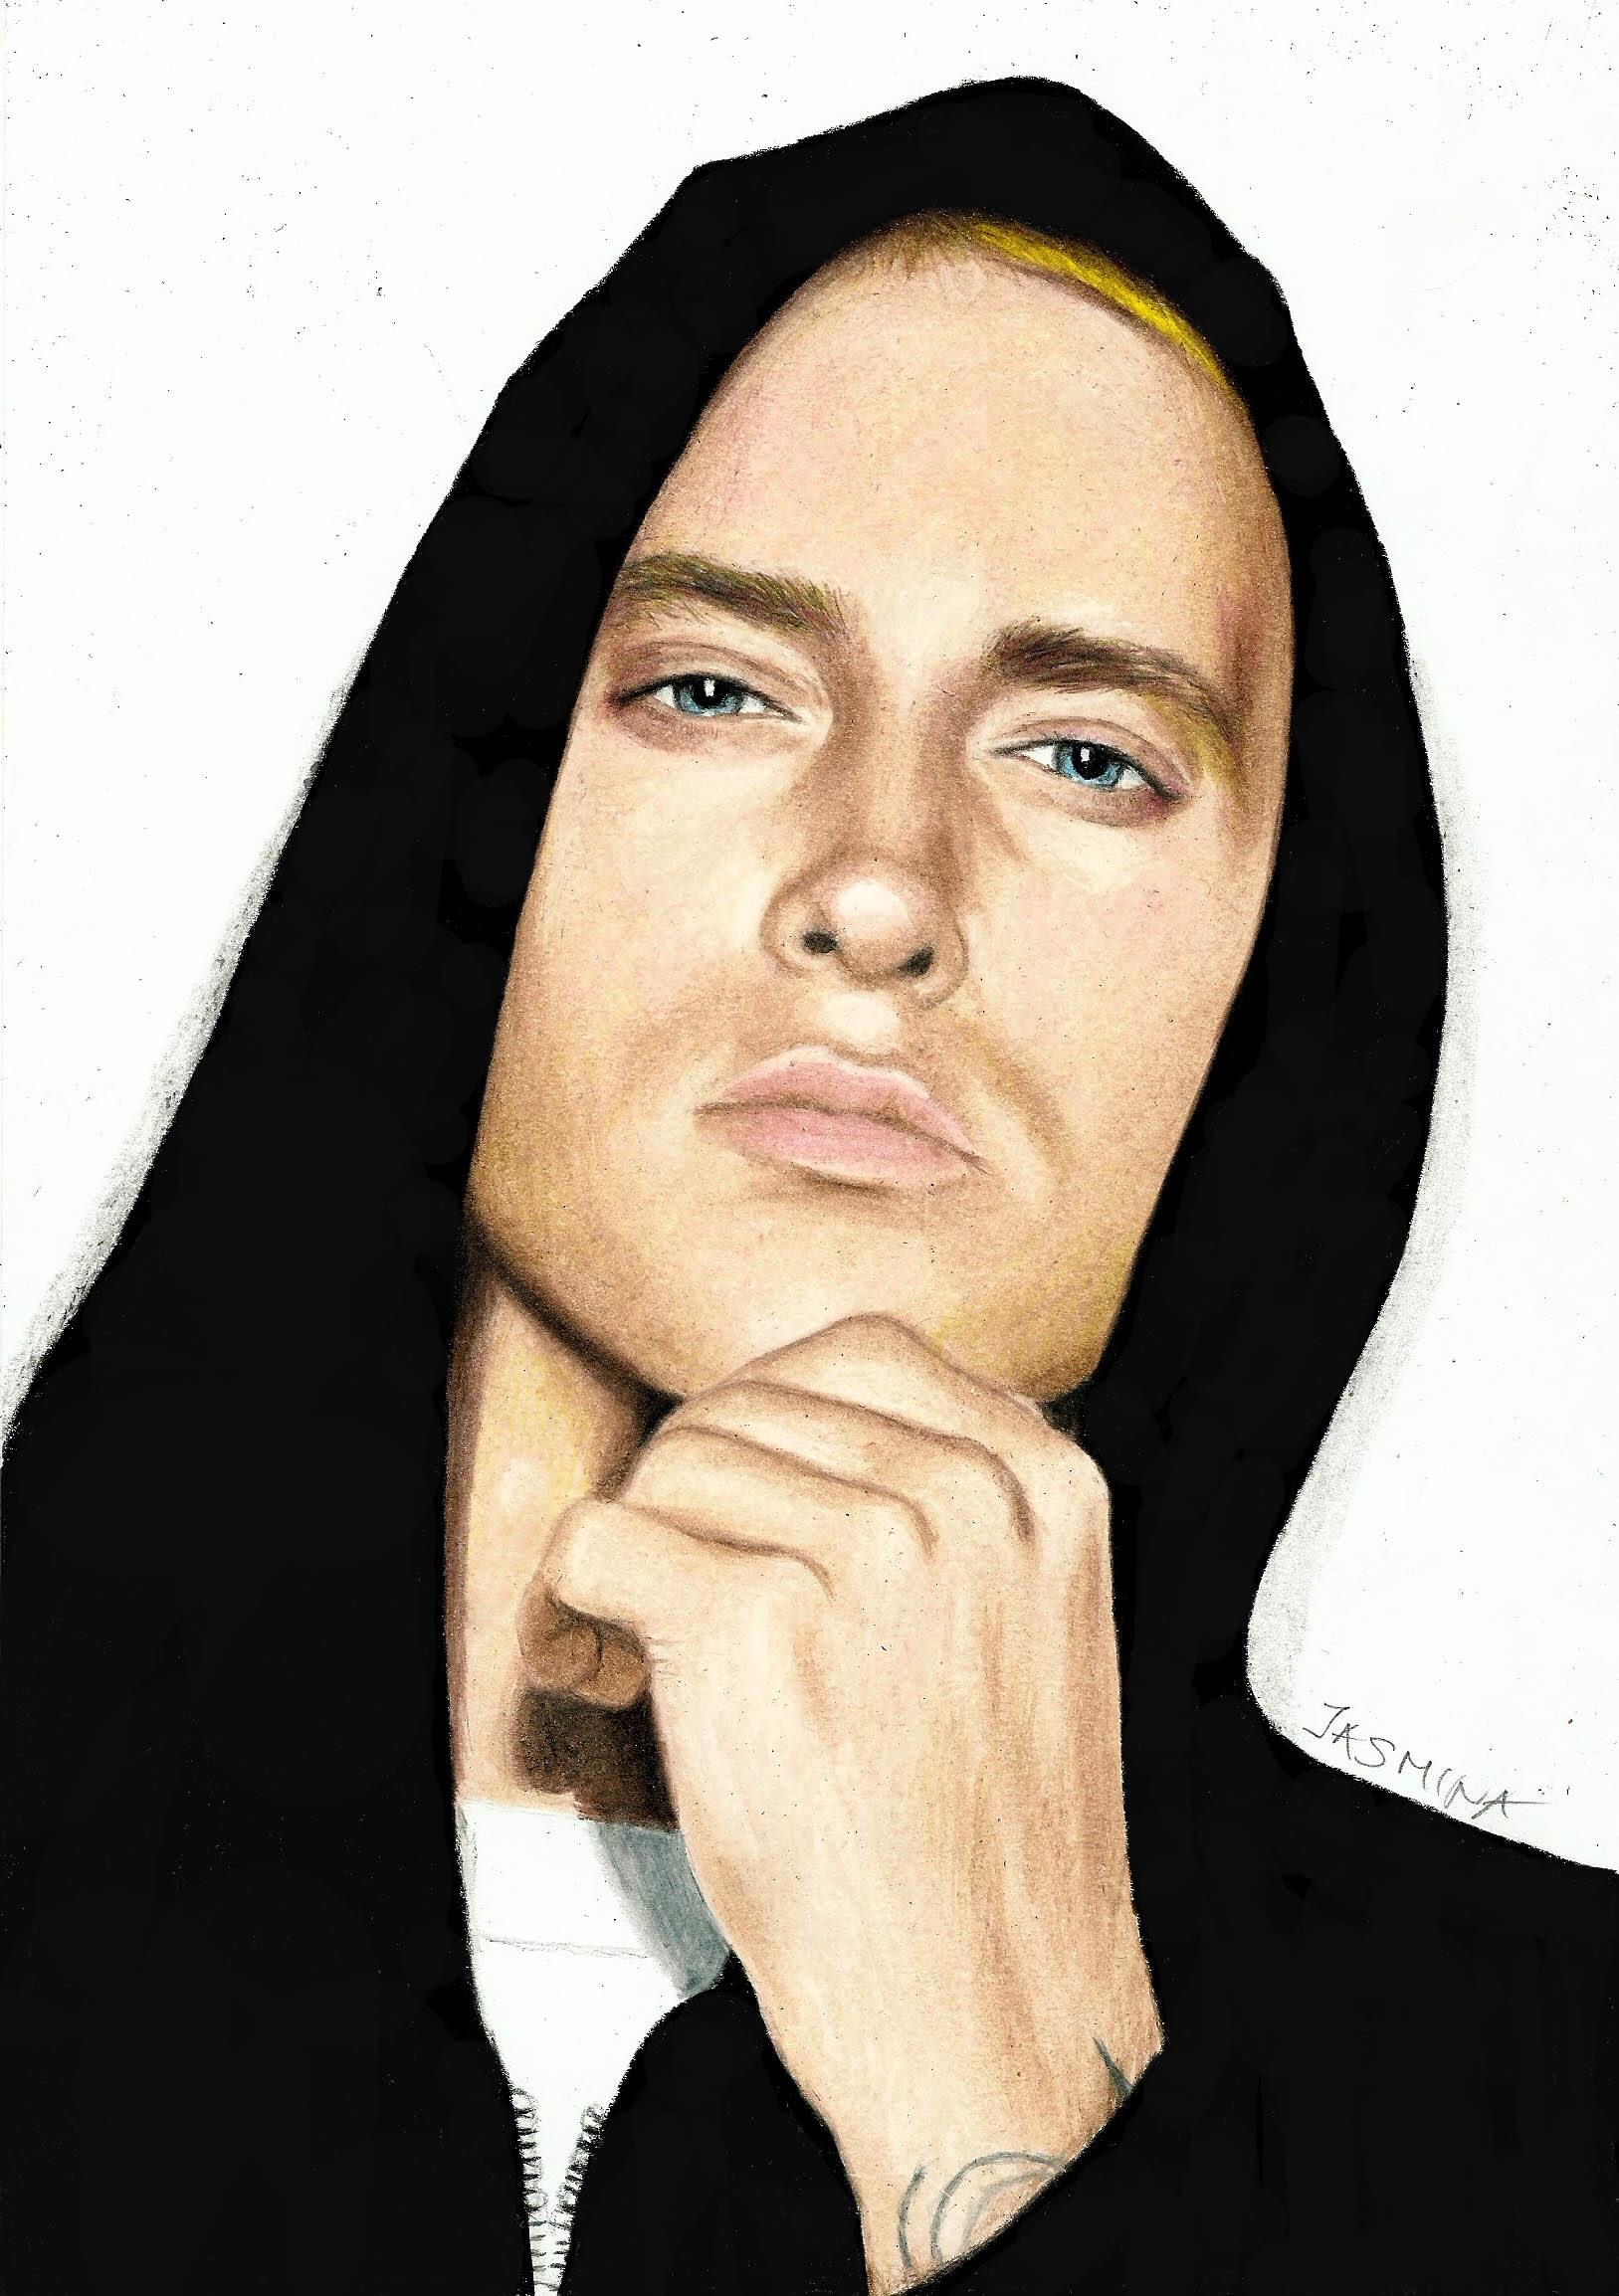 Drawn portrait eminem In drawing best you time